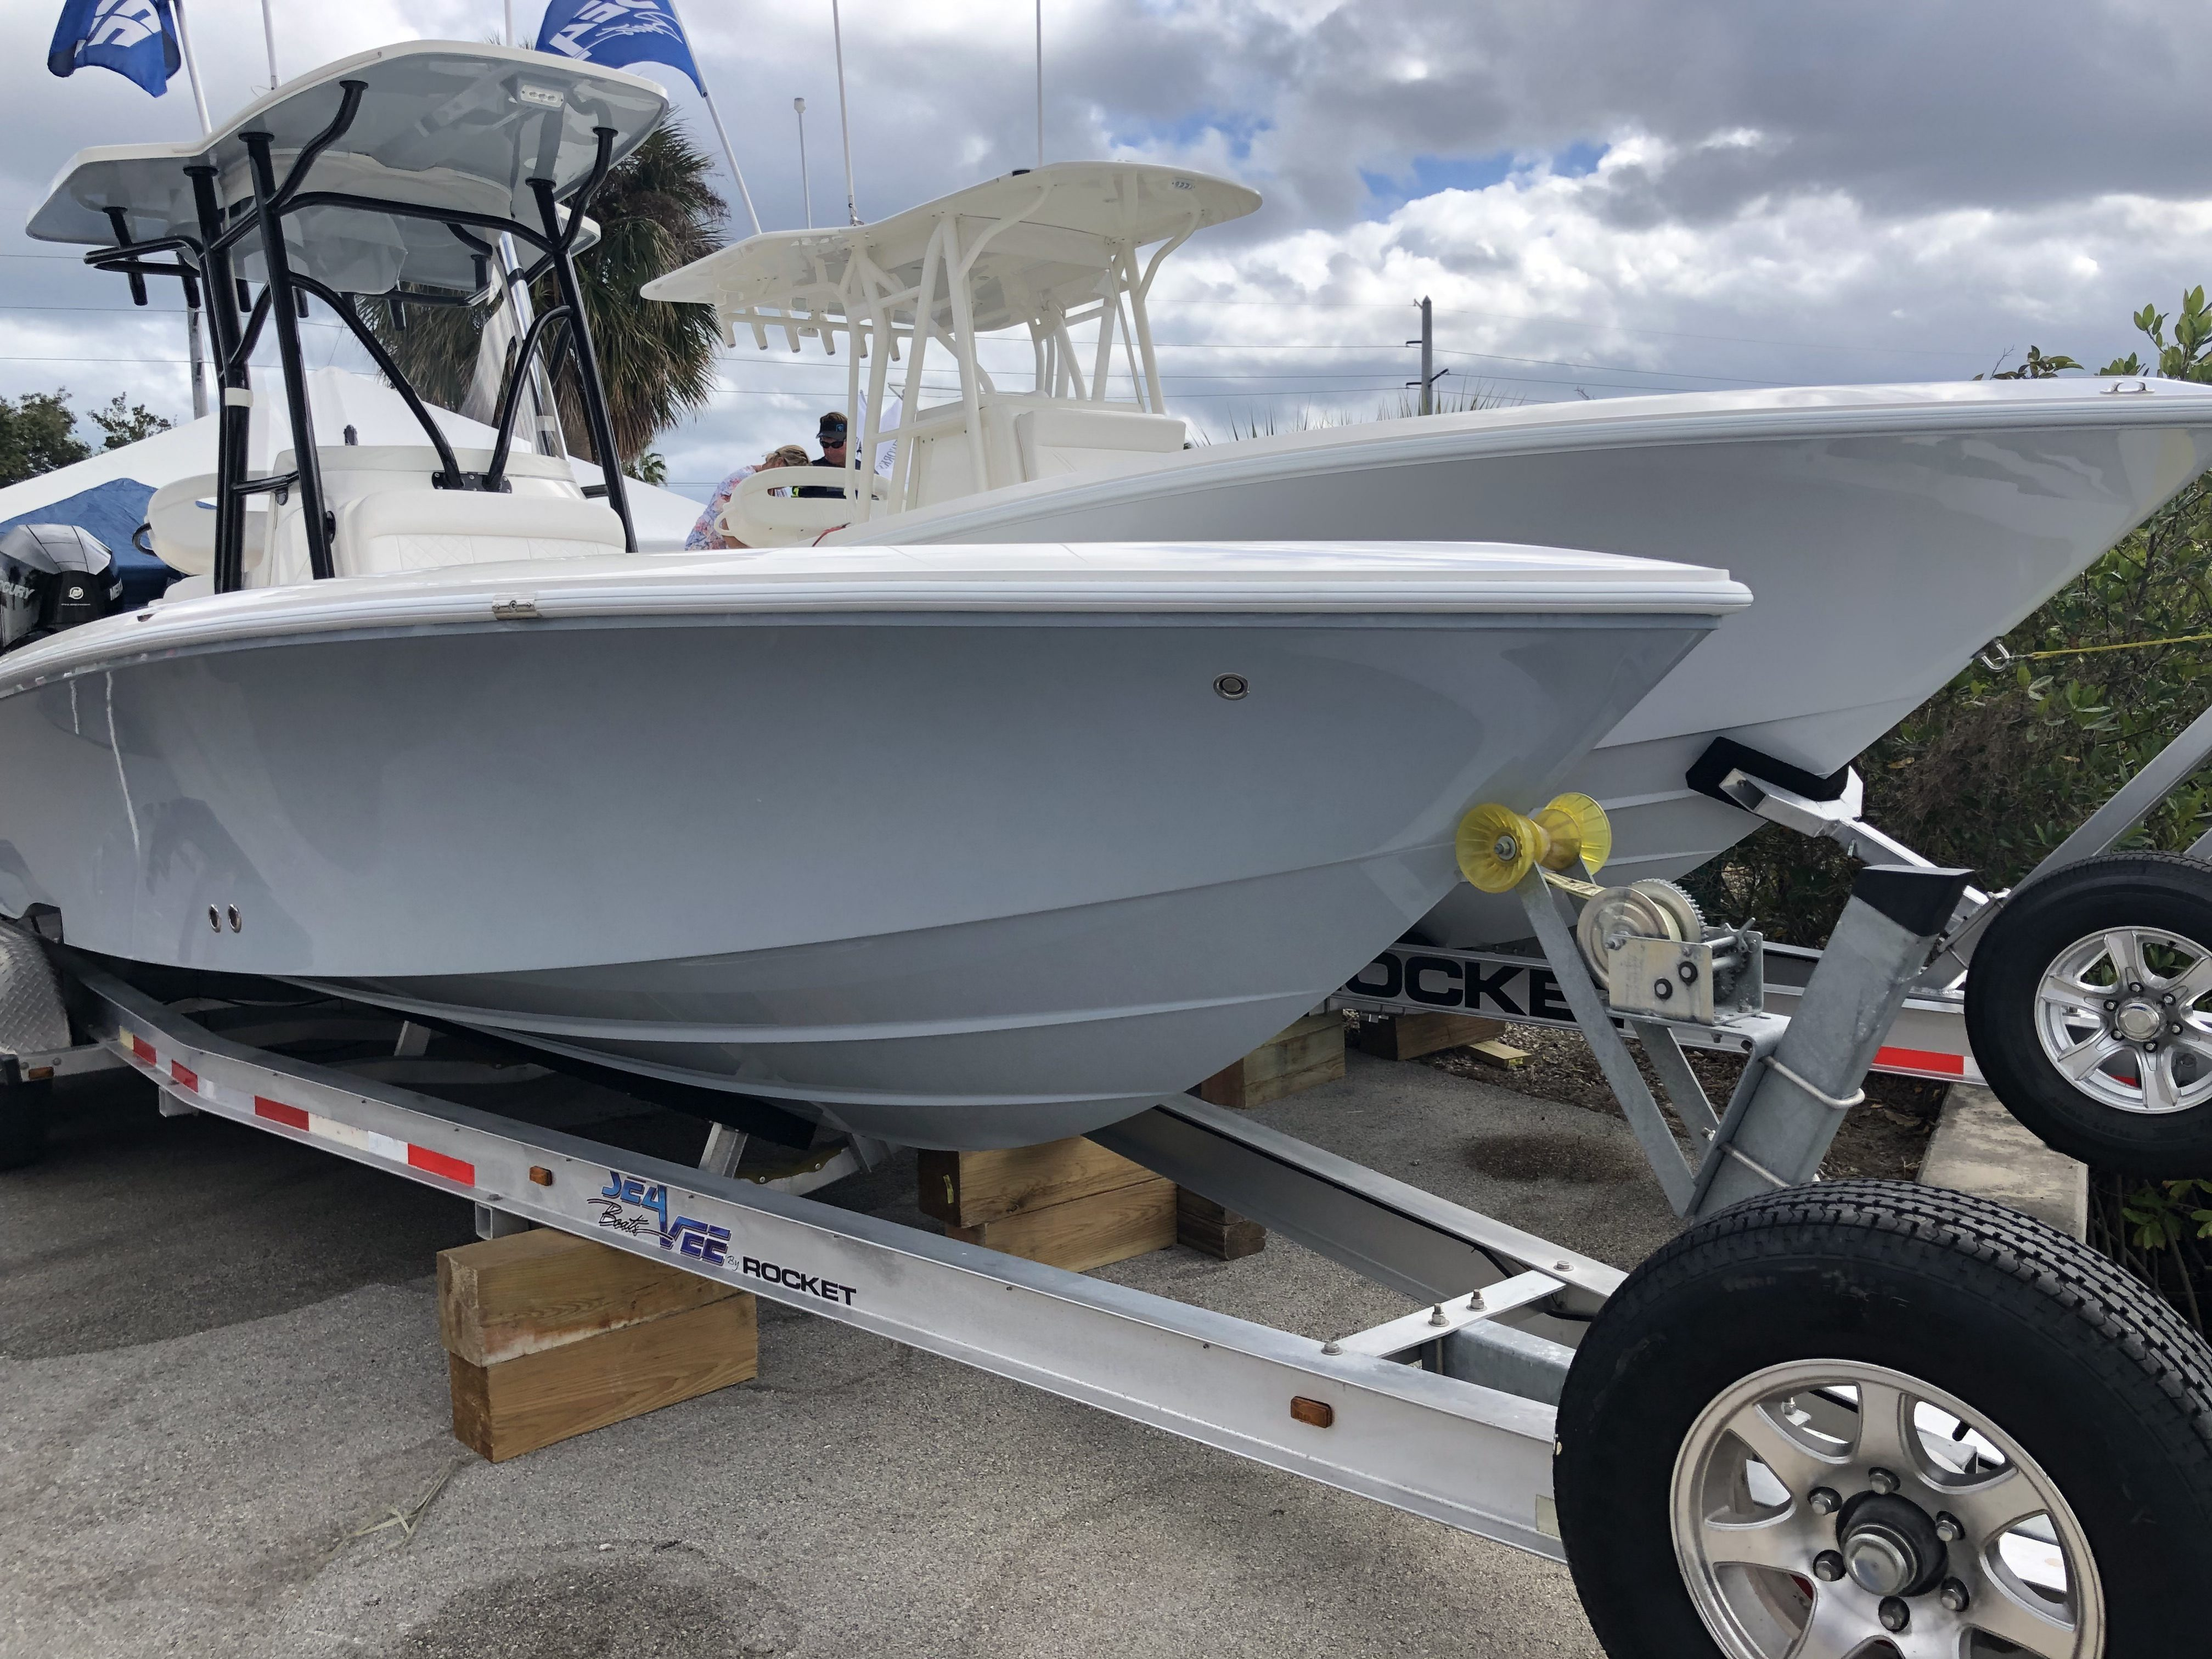 Boat Trailers Miami - Rocket Trailers Manufacturer